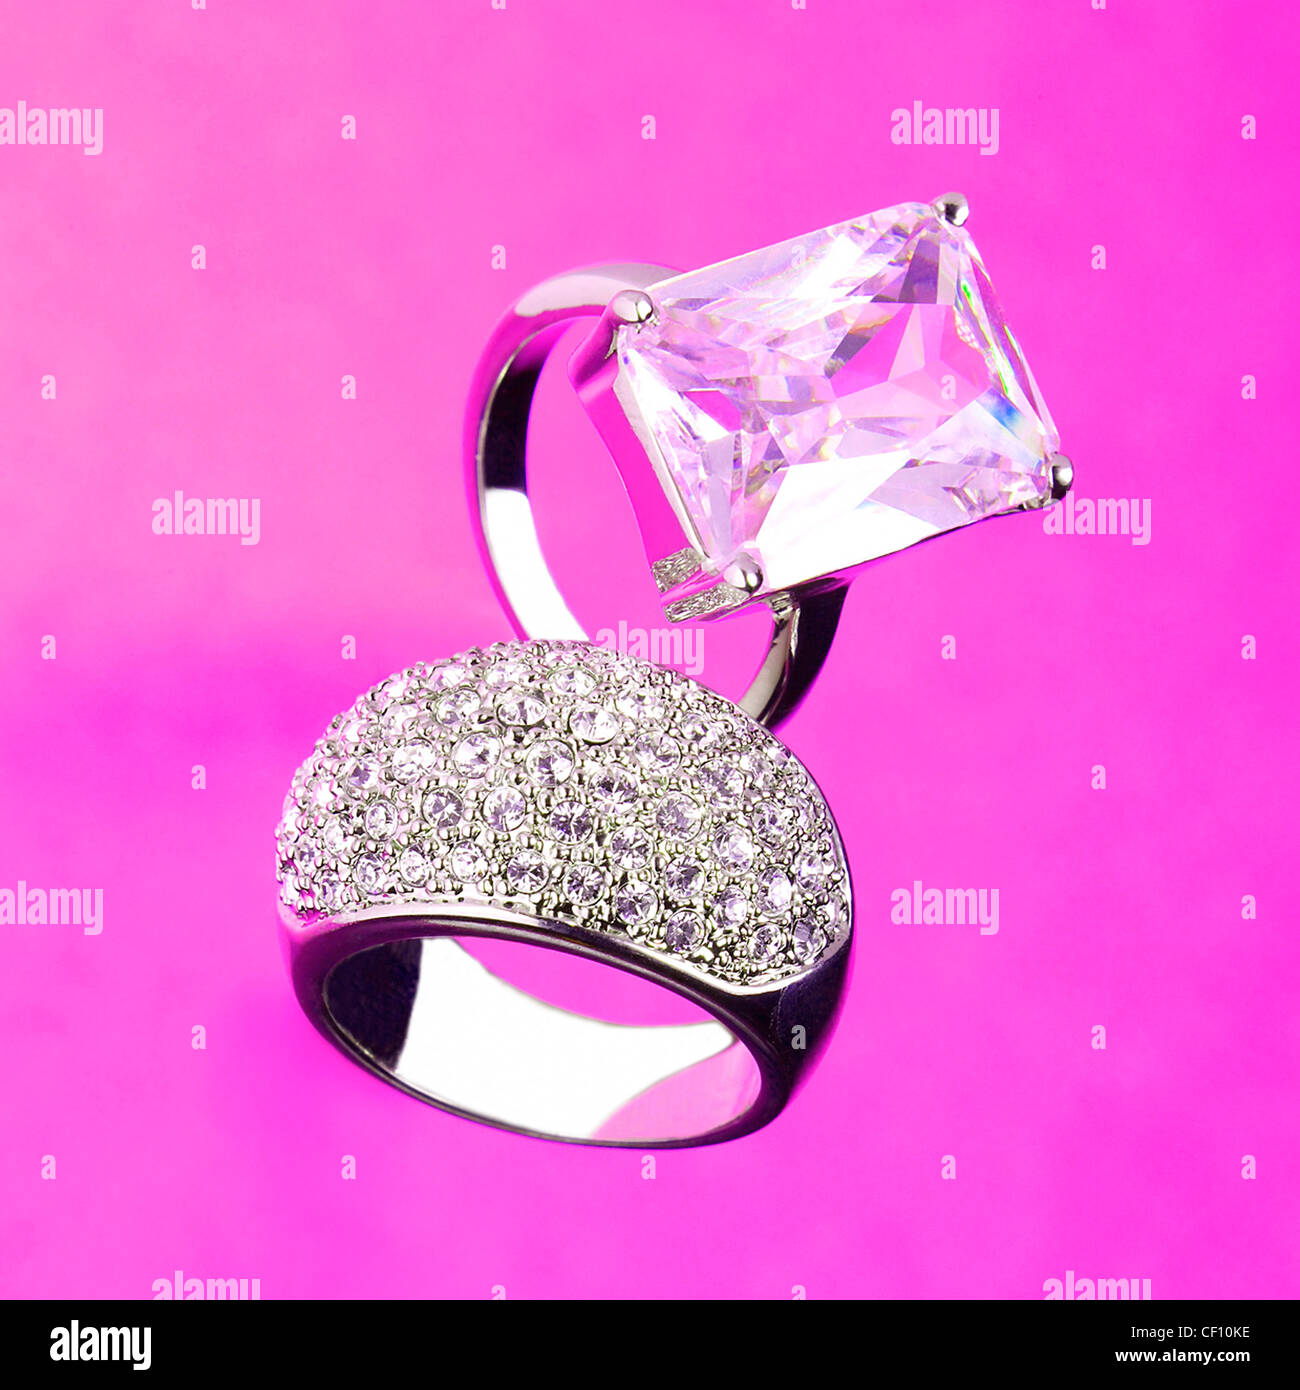 Rings Photo Stock Photos & Rings Photo Stock Images - Alamy